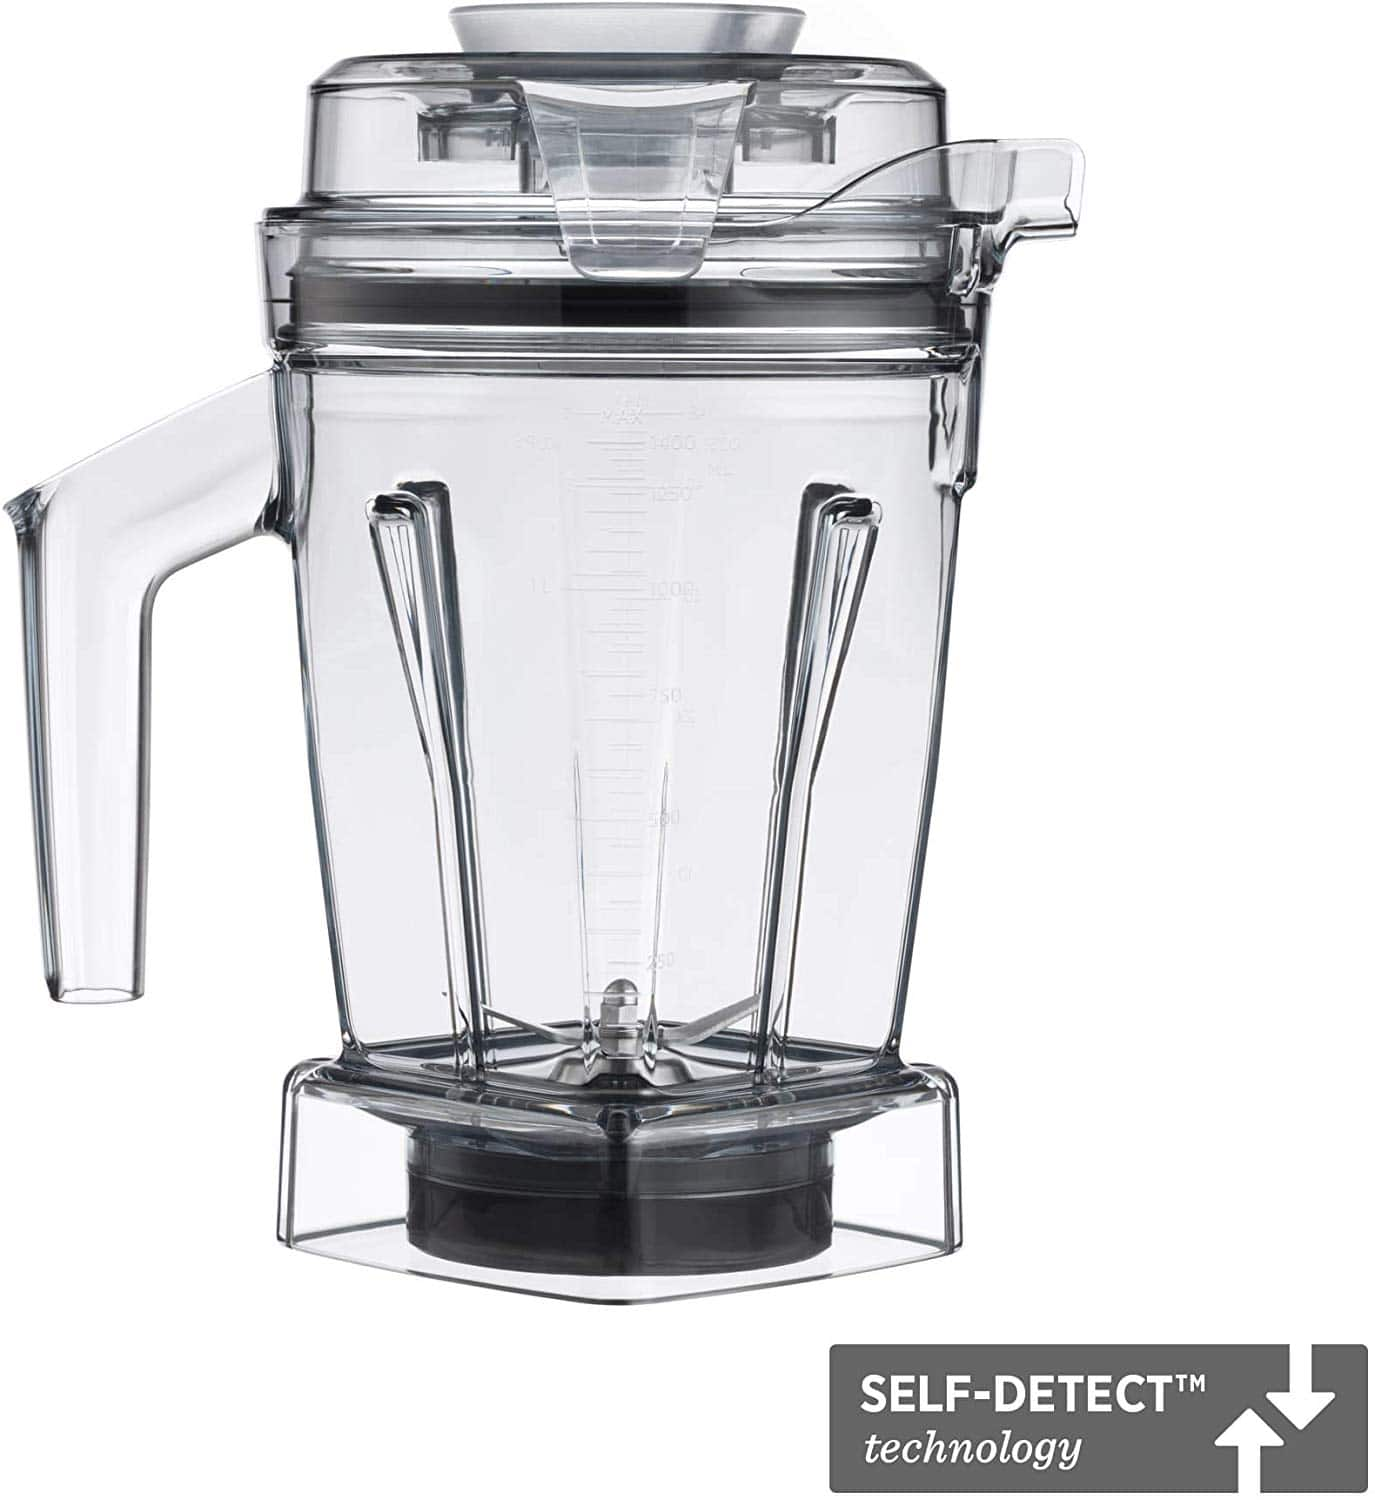 Vitamix Ascent Series Container, 48 oz. with SELF-DETECT by Vitamix - $115.95